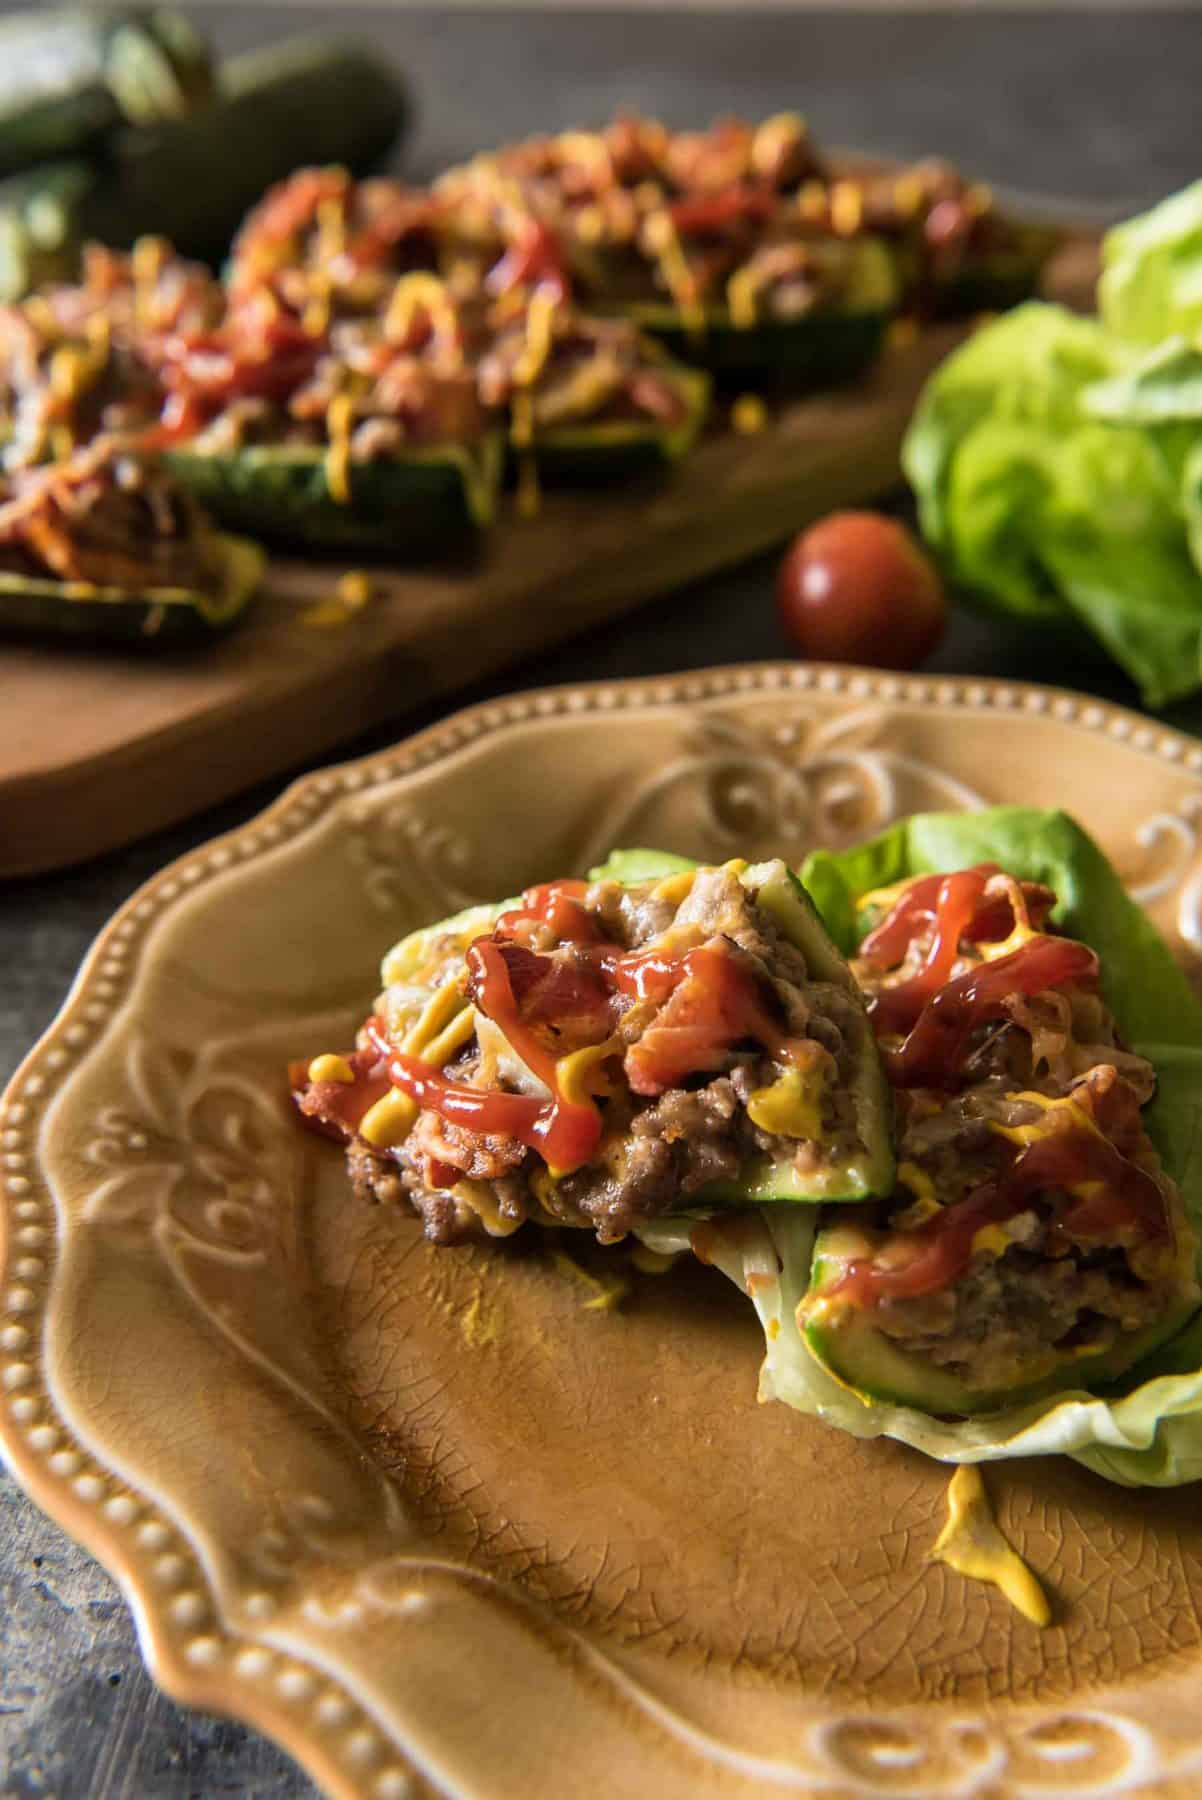 These low-carb, keto-friendly Bacon Cheeseburger Zucchini Boats are surprisingly filling! They're loaded with cheese and all the flavors of your favorite burger, and will easily calm your craving for one - without the bun!